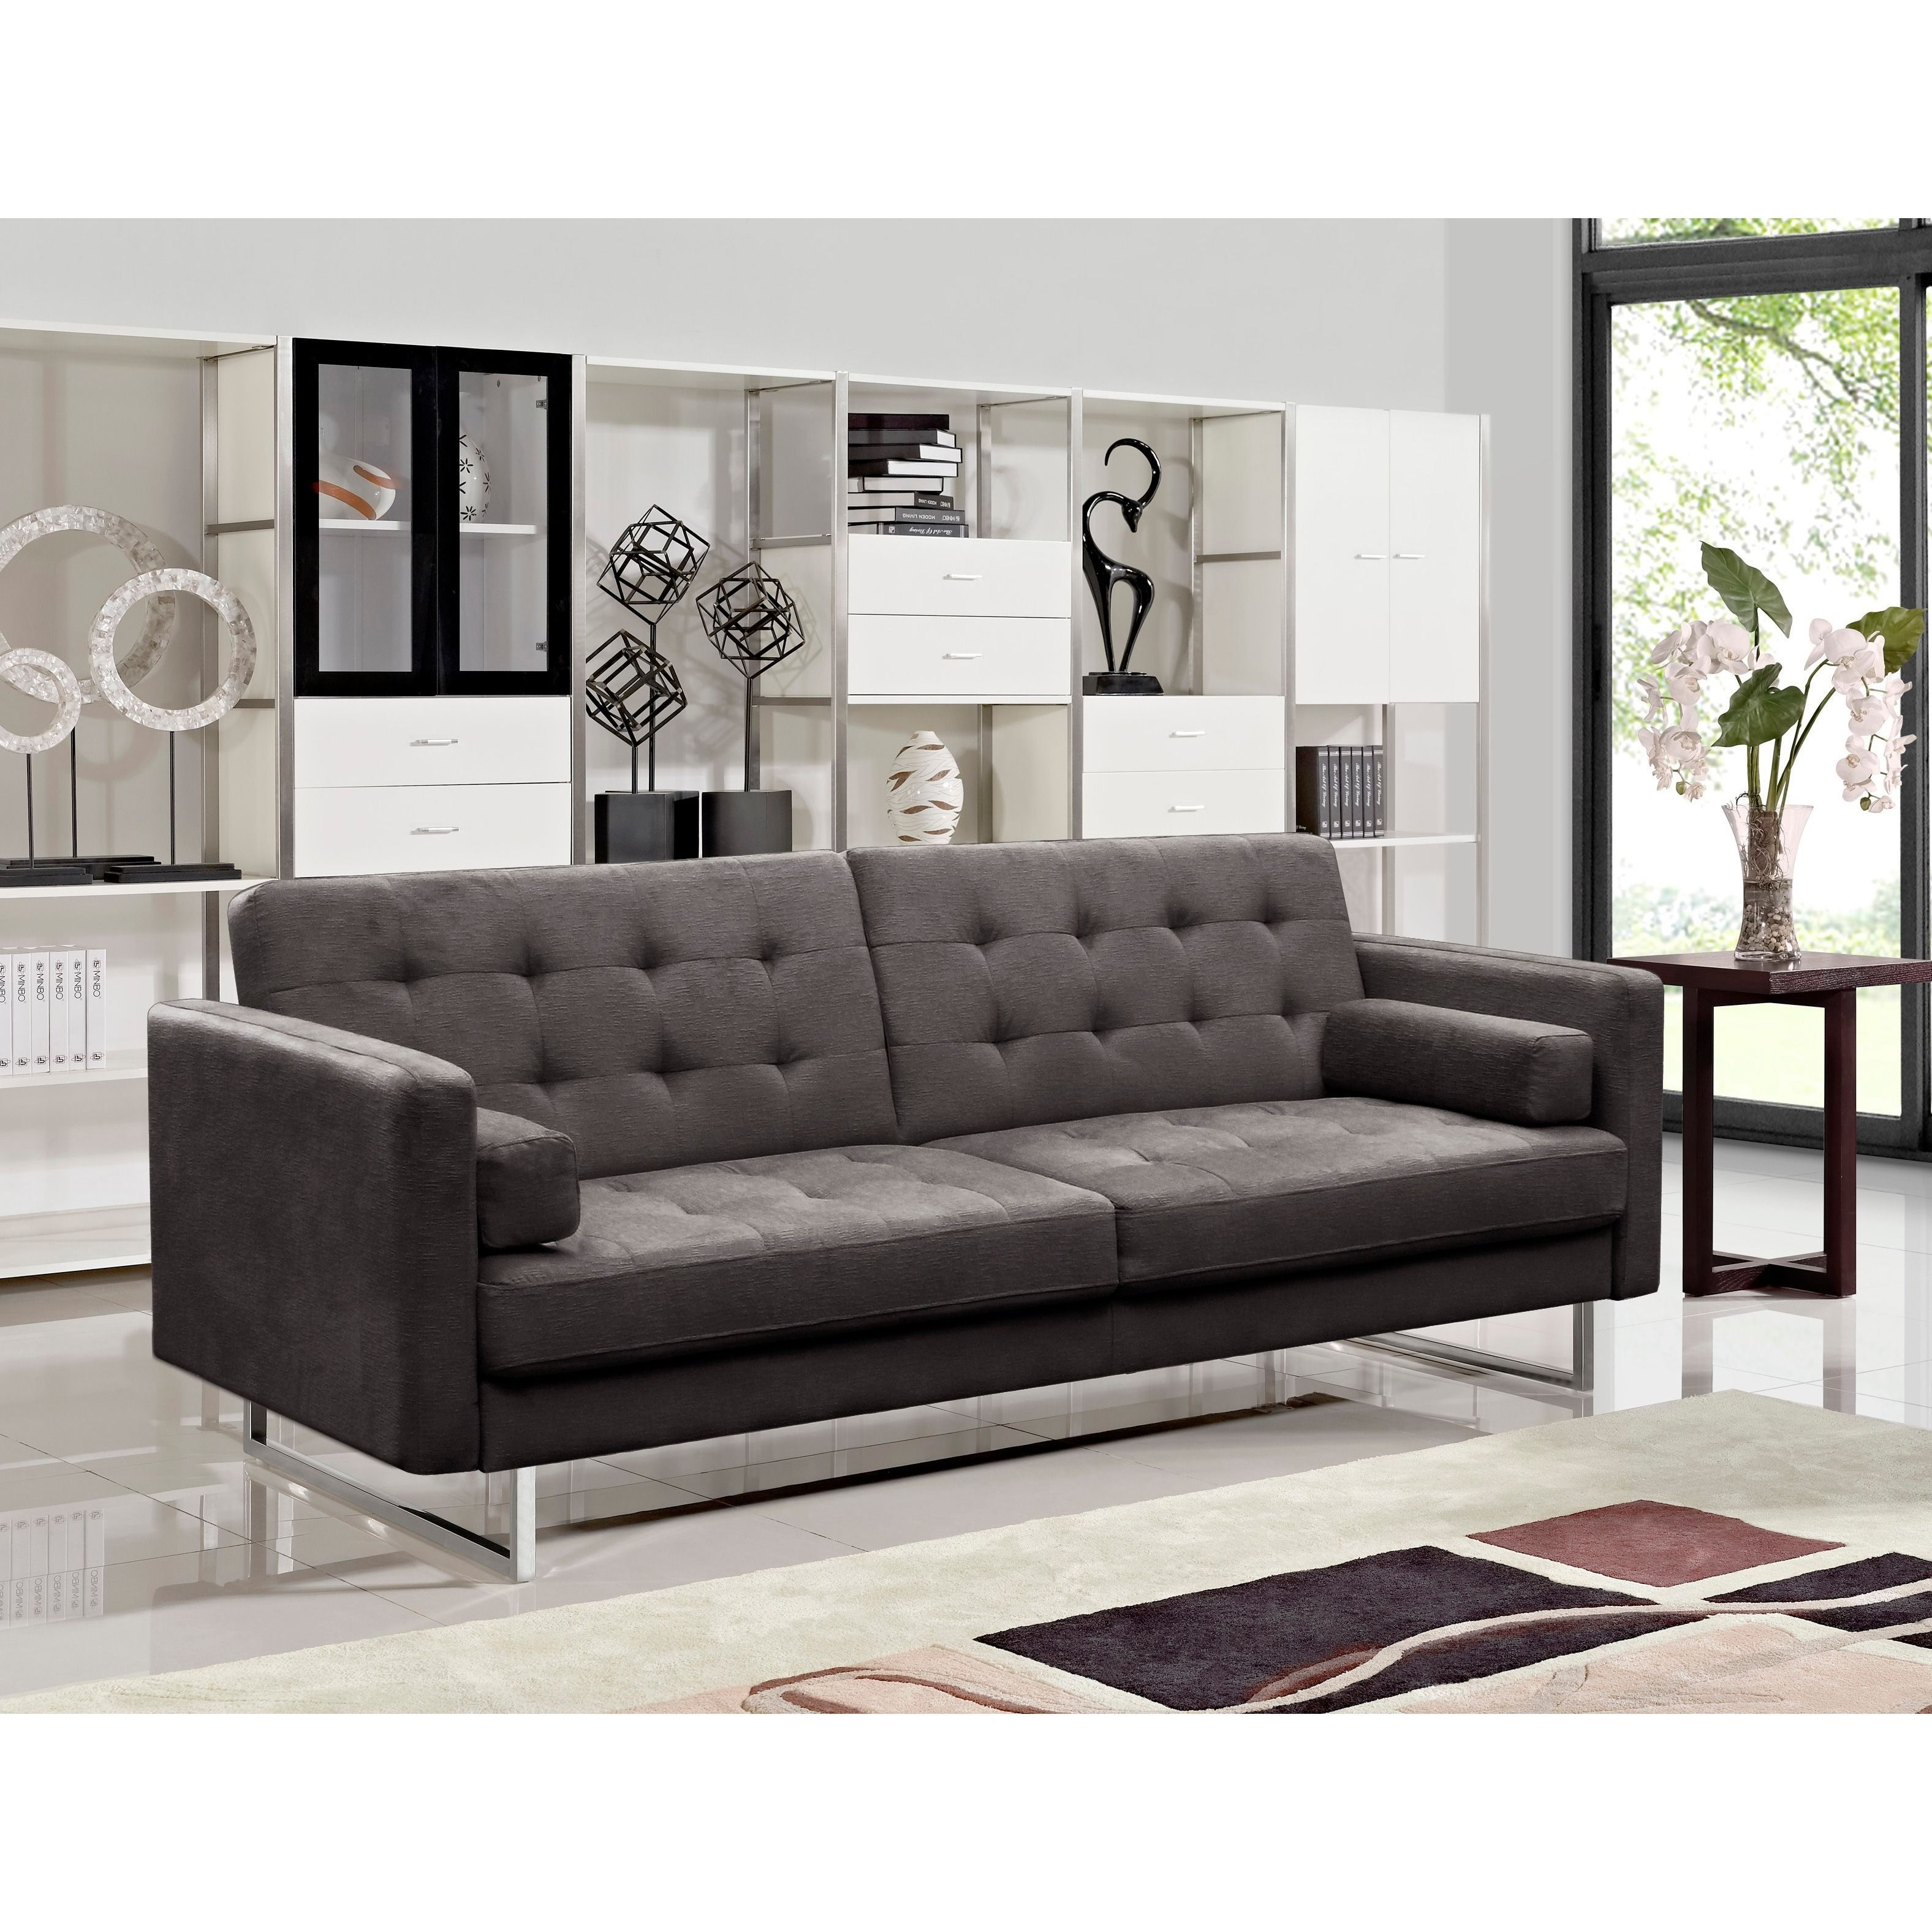 Overstock Com Online Shopping Bedding Furniture Electronics Jewelry Clothing More Modern Convertible Sofa Modern Sofa Bed Sofa Bed Design